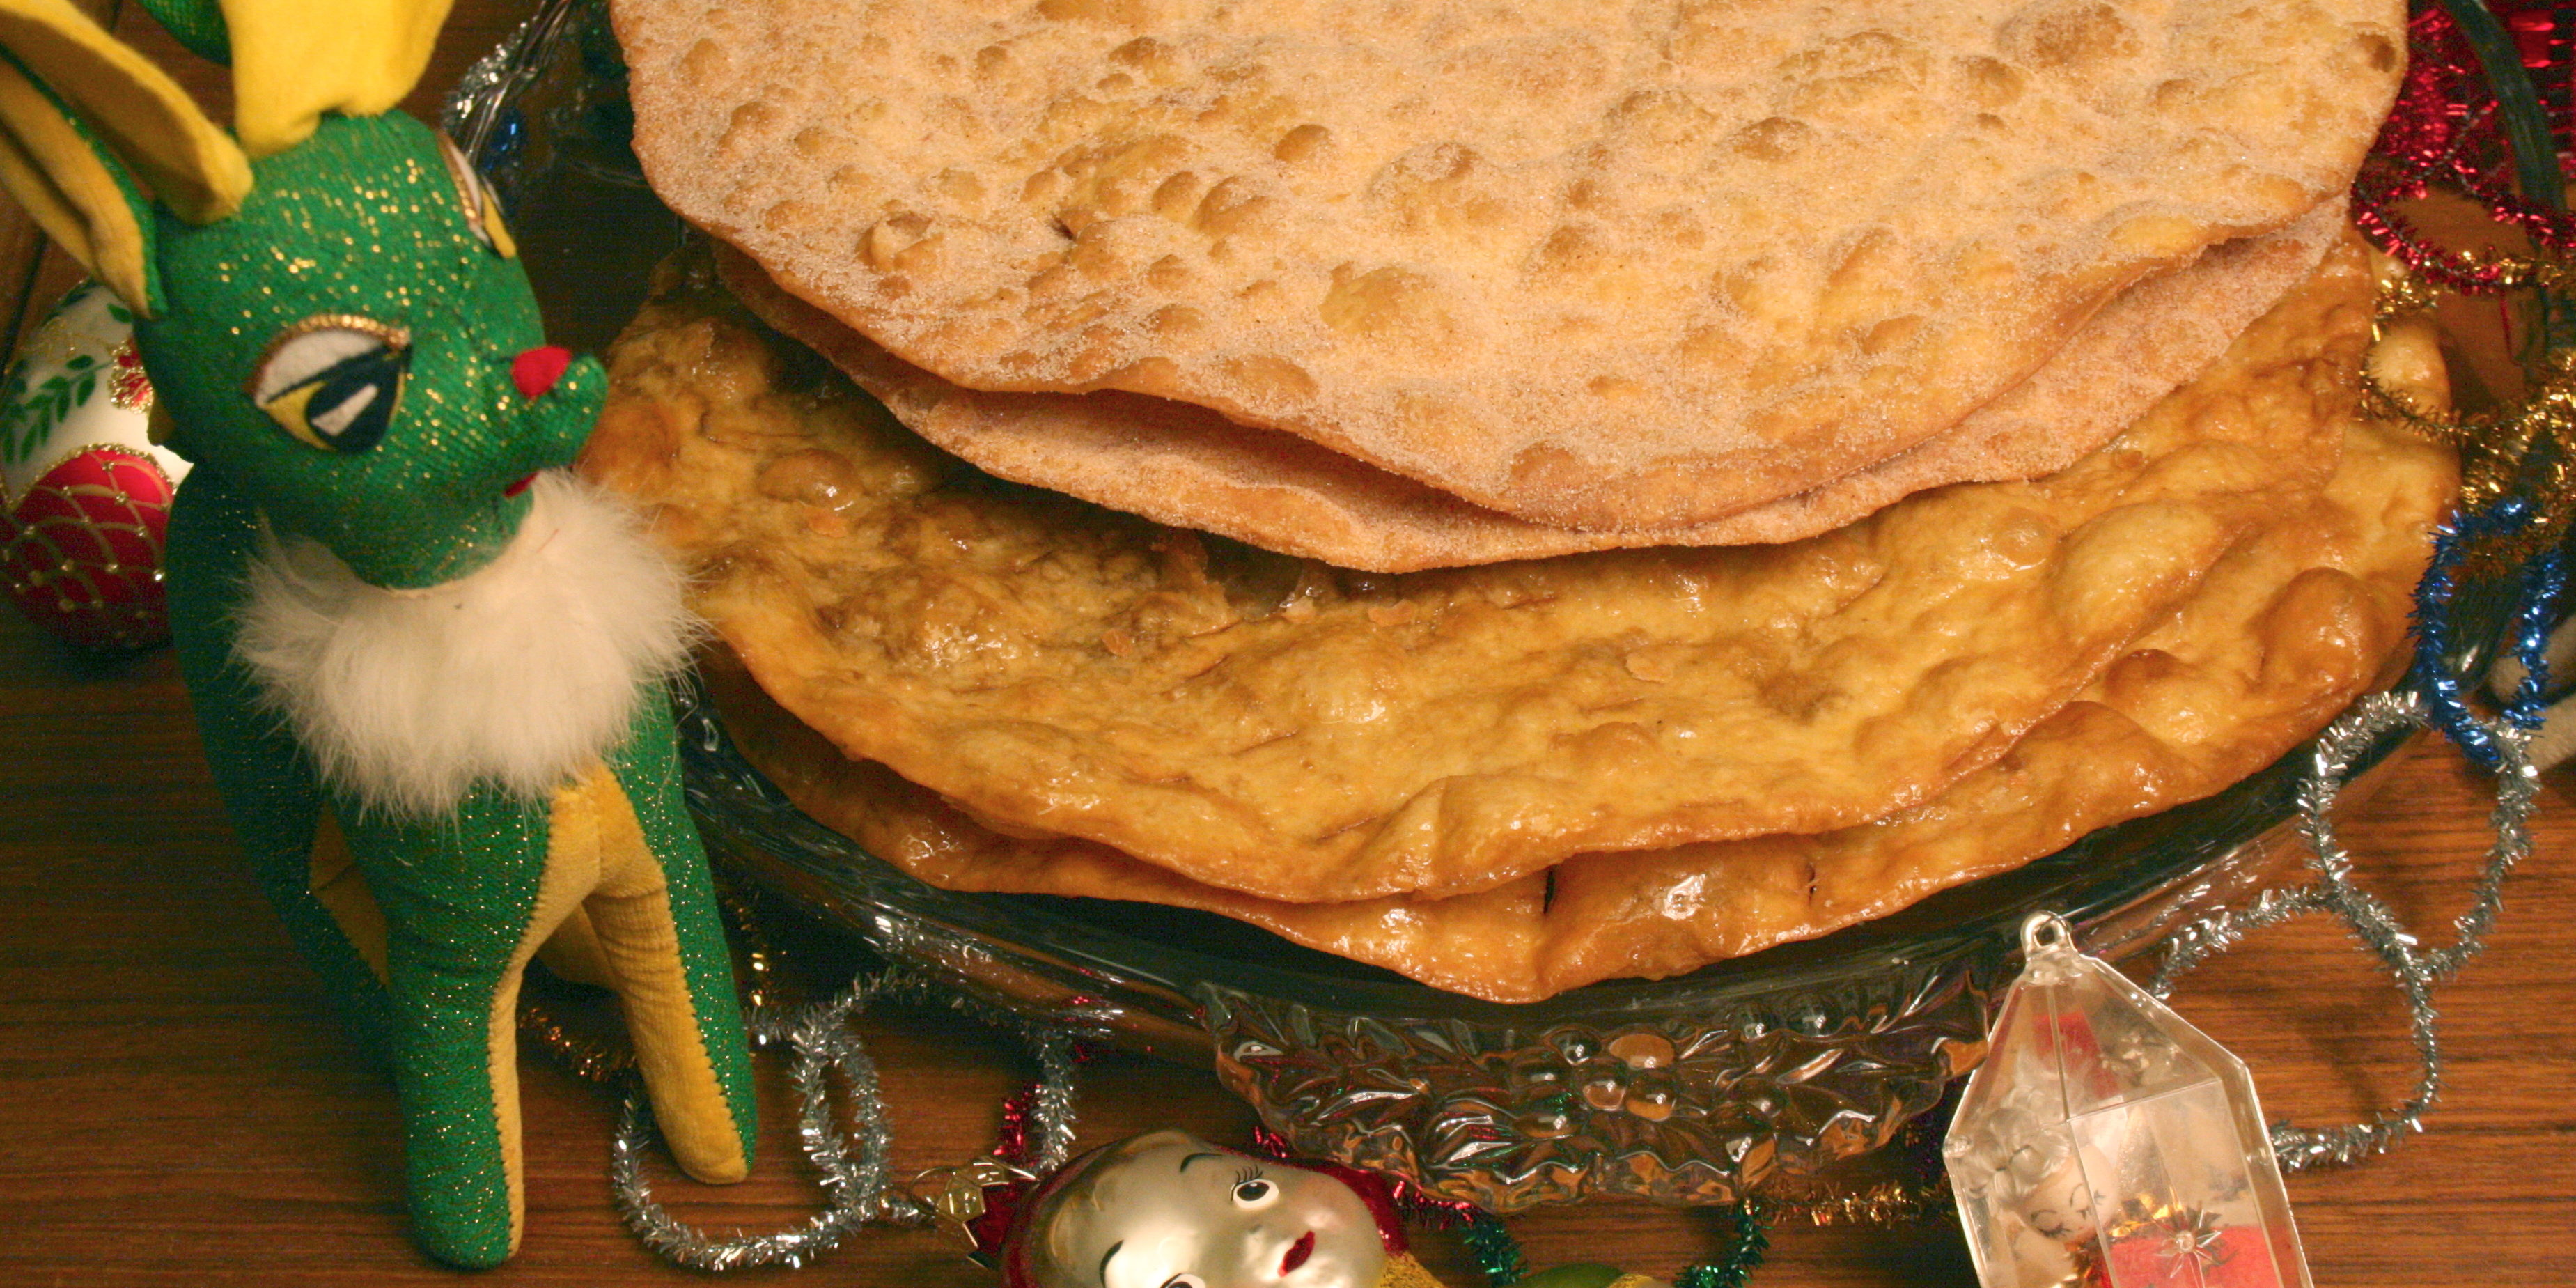 Easy to make Buñuelos for a touch of a Mexican Christmas!